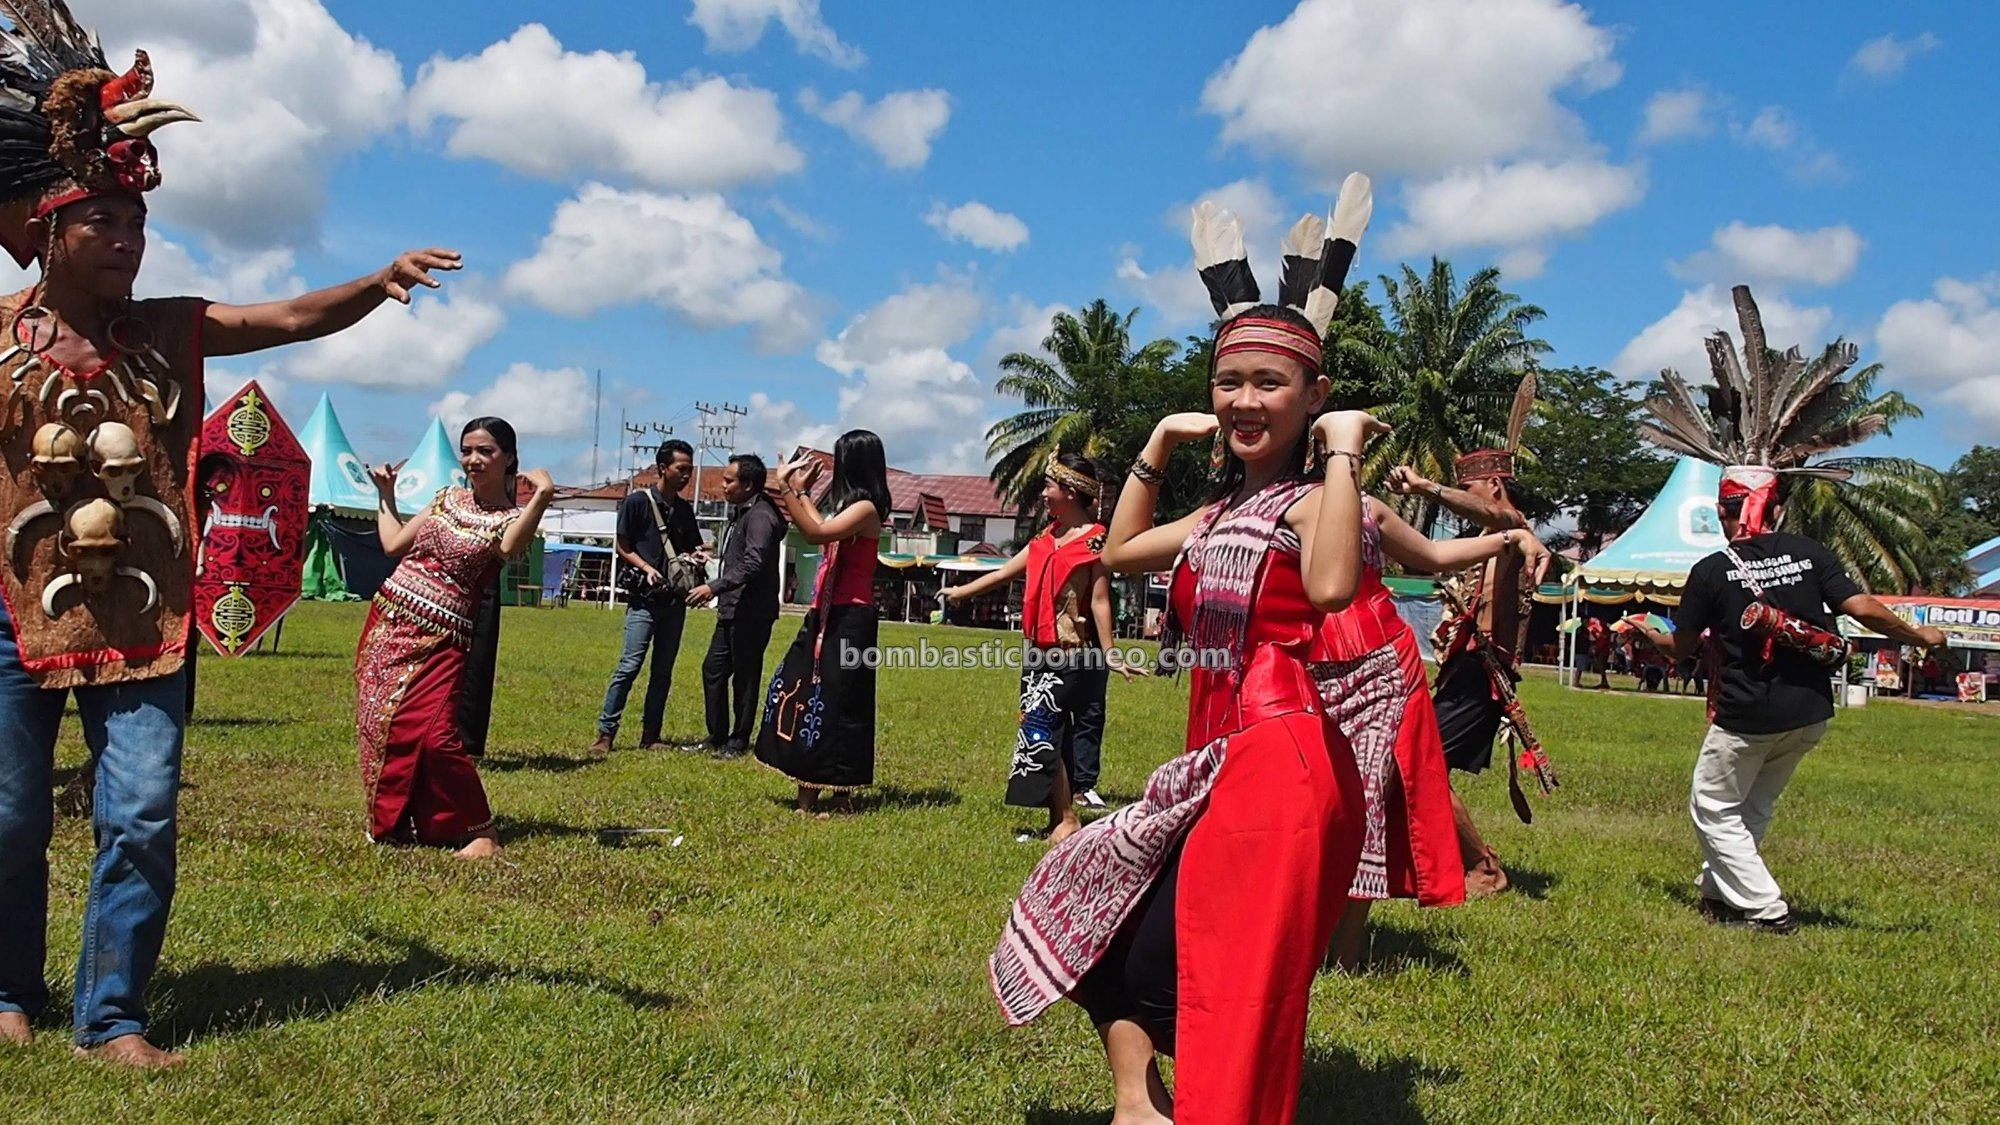 Gawai Dayak Kapuas Hulu, harvest festival, authentic, tribal, event, destination, Ethnic, native, Tourism, tourist attraction, travel guide, Trans Borneo, 跨境婆罗洲游踪, 印尼西加里曼丹, 富都土著文化旅游